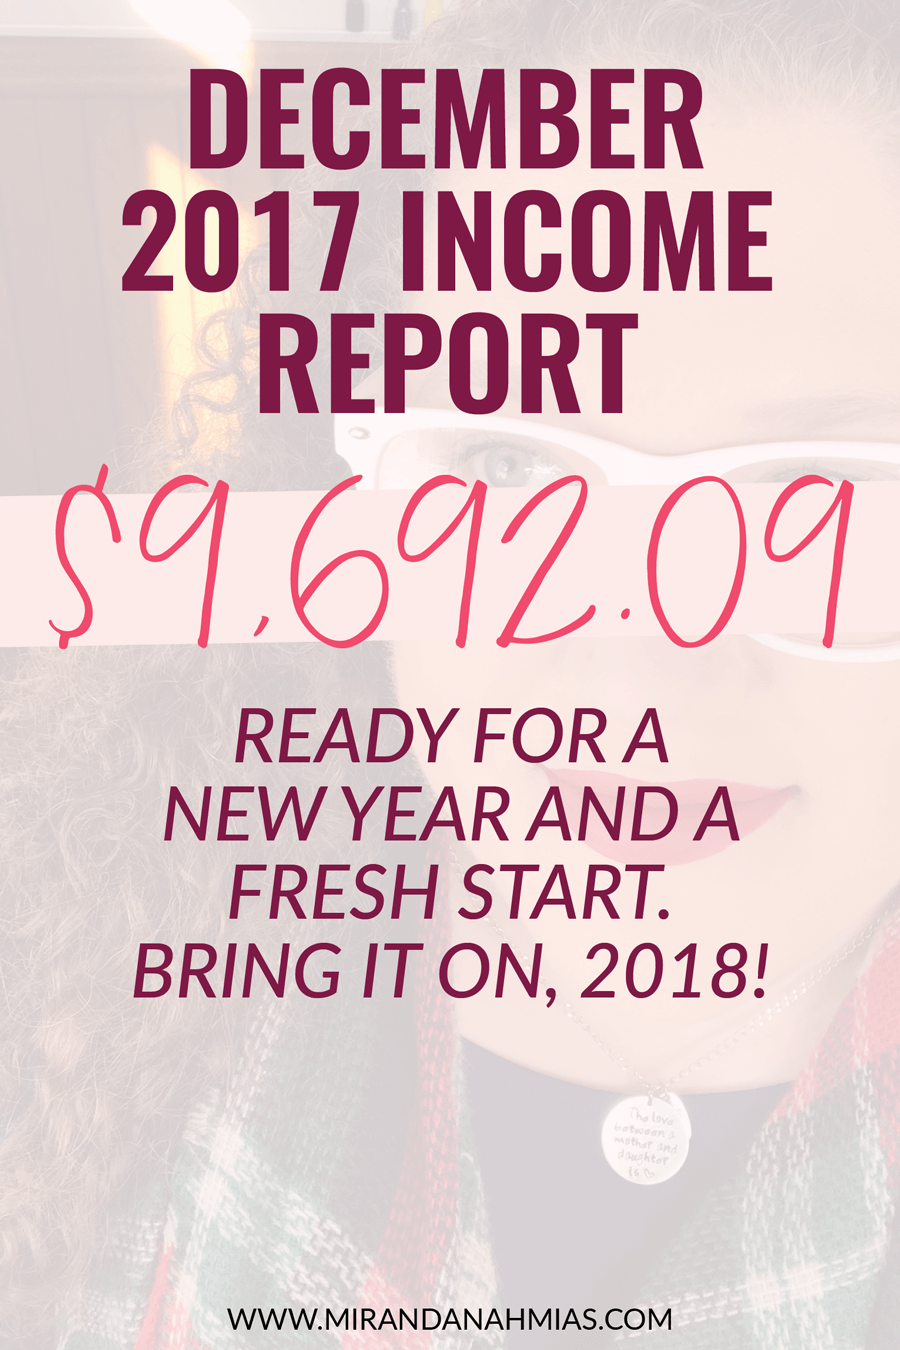 Here's my December 2017 income report. My business is a work in progress, but I'm excited for where it will take me in 2018! | Miranda Nahmias & Co. — Score Clients and Explode Your Business with Systematic Marketing